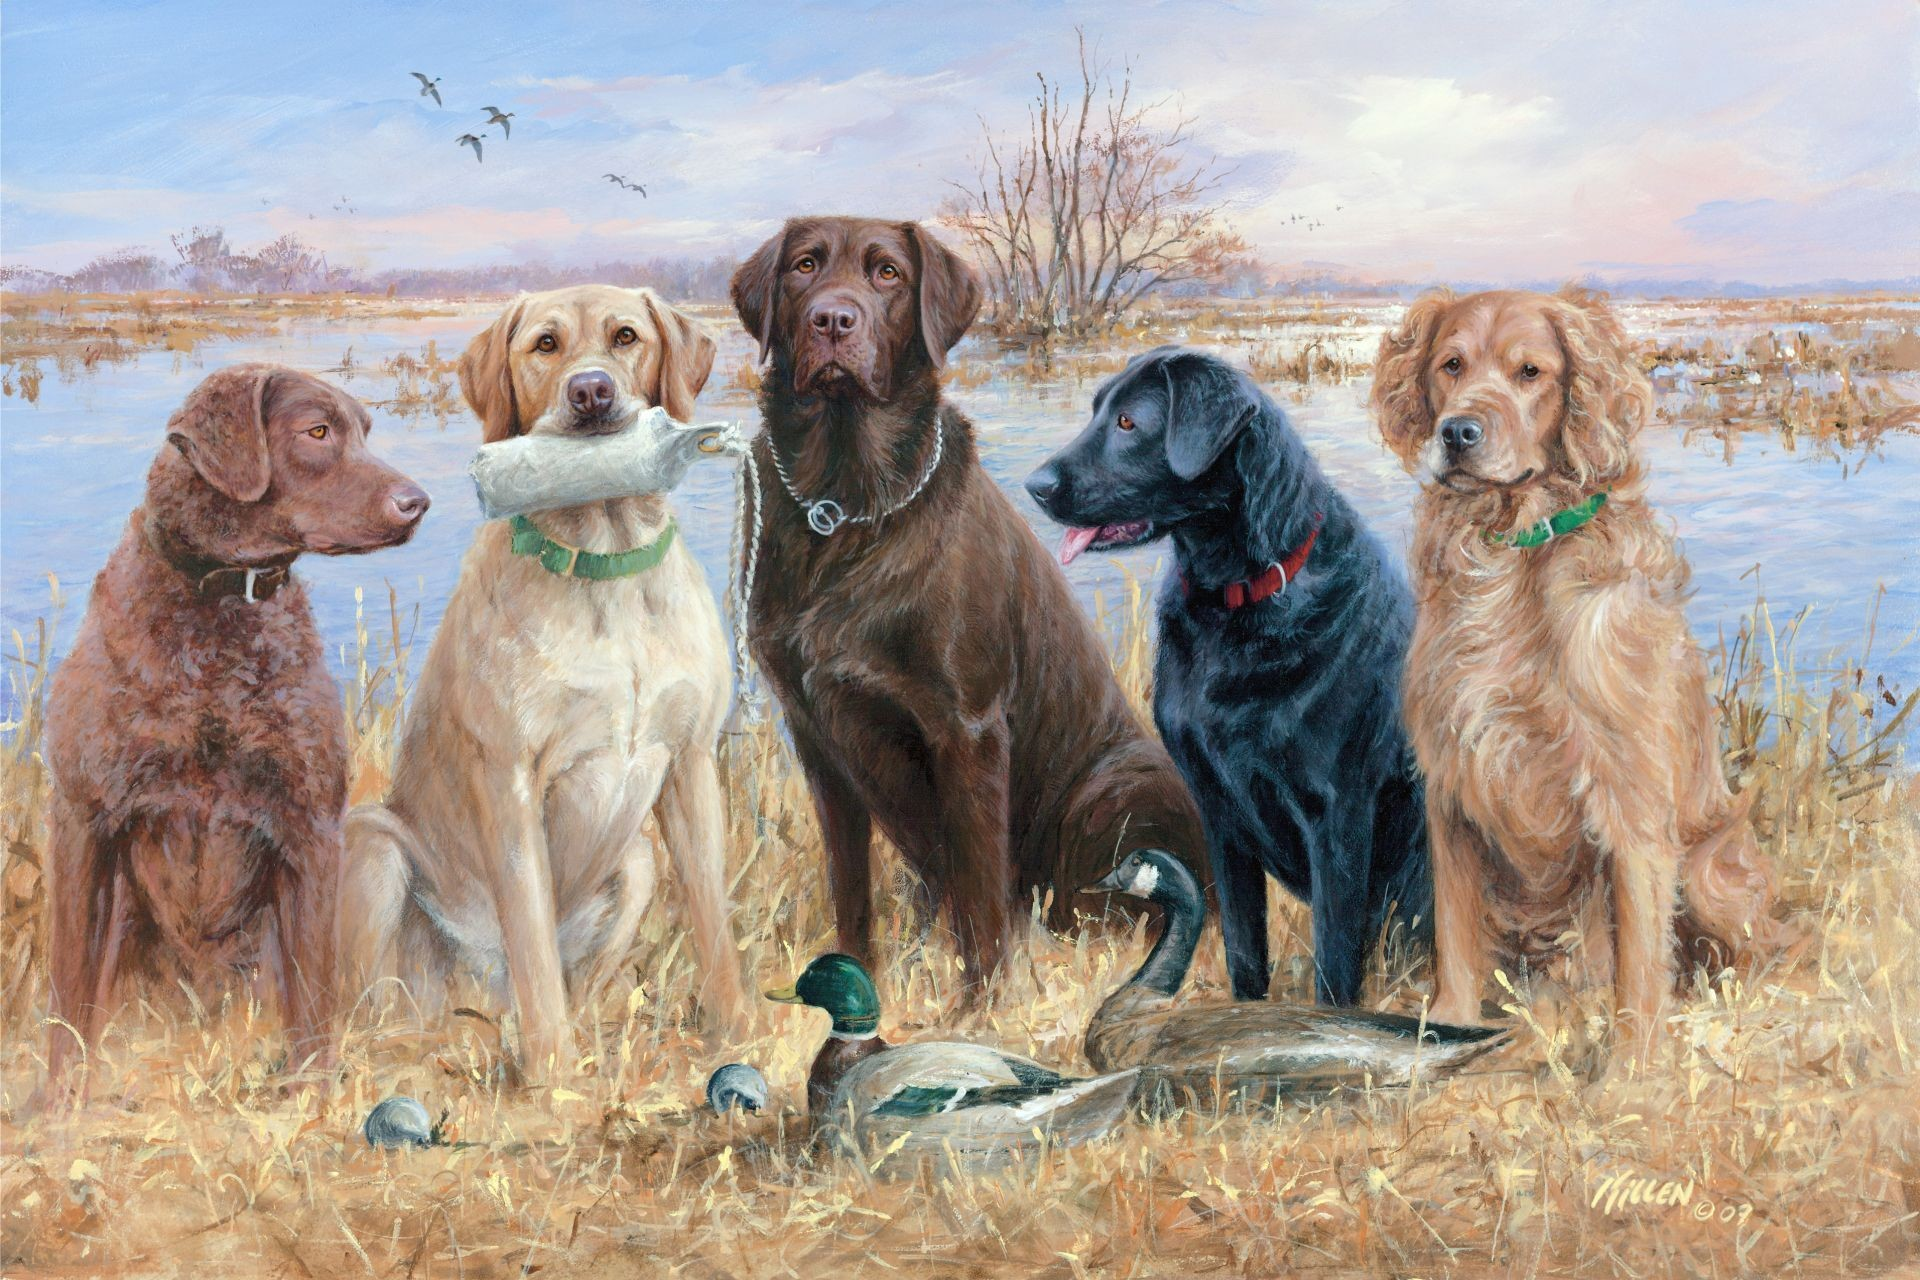 1920x1280 duck hunting dogs | Duck Hunting Desktop Wallpapers with Waterfowl Gallery